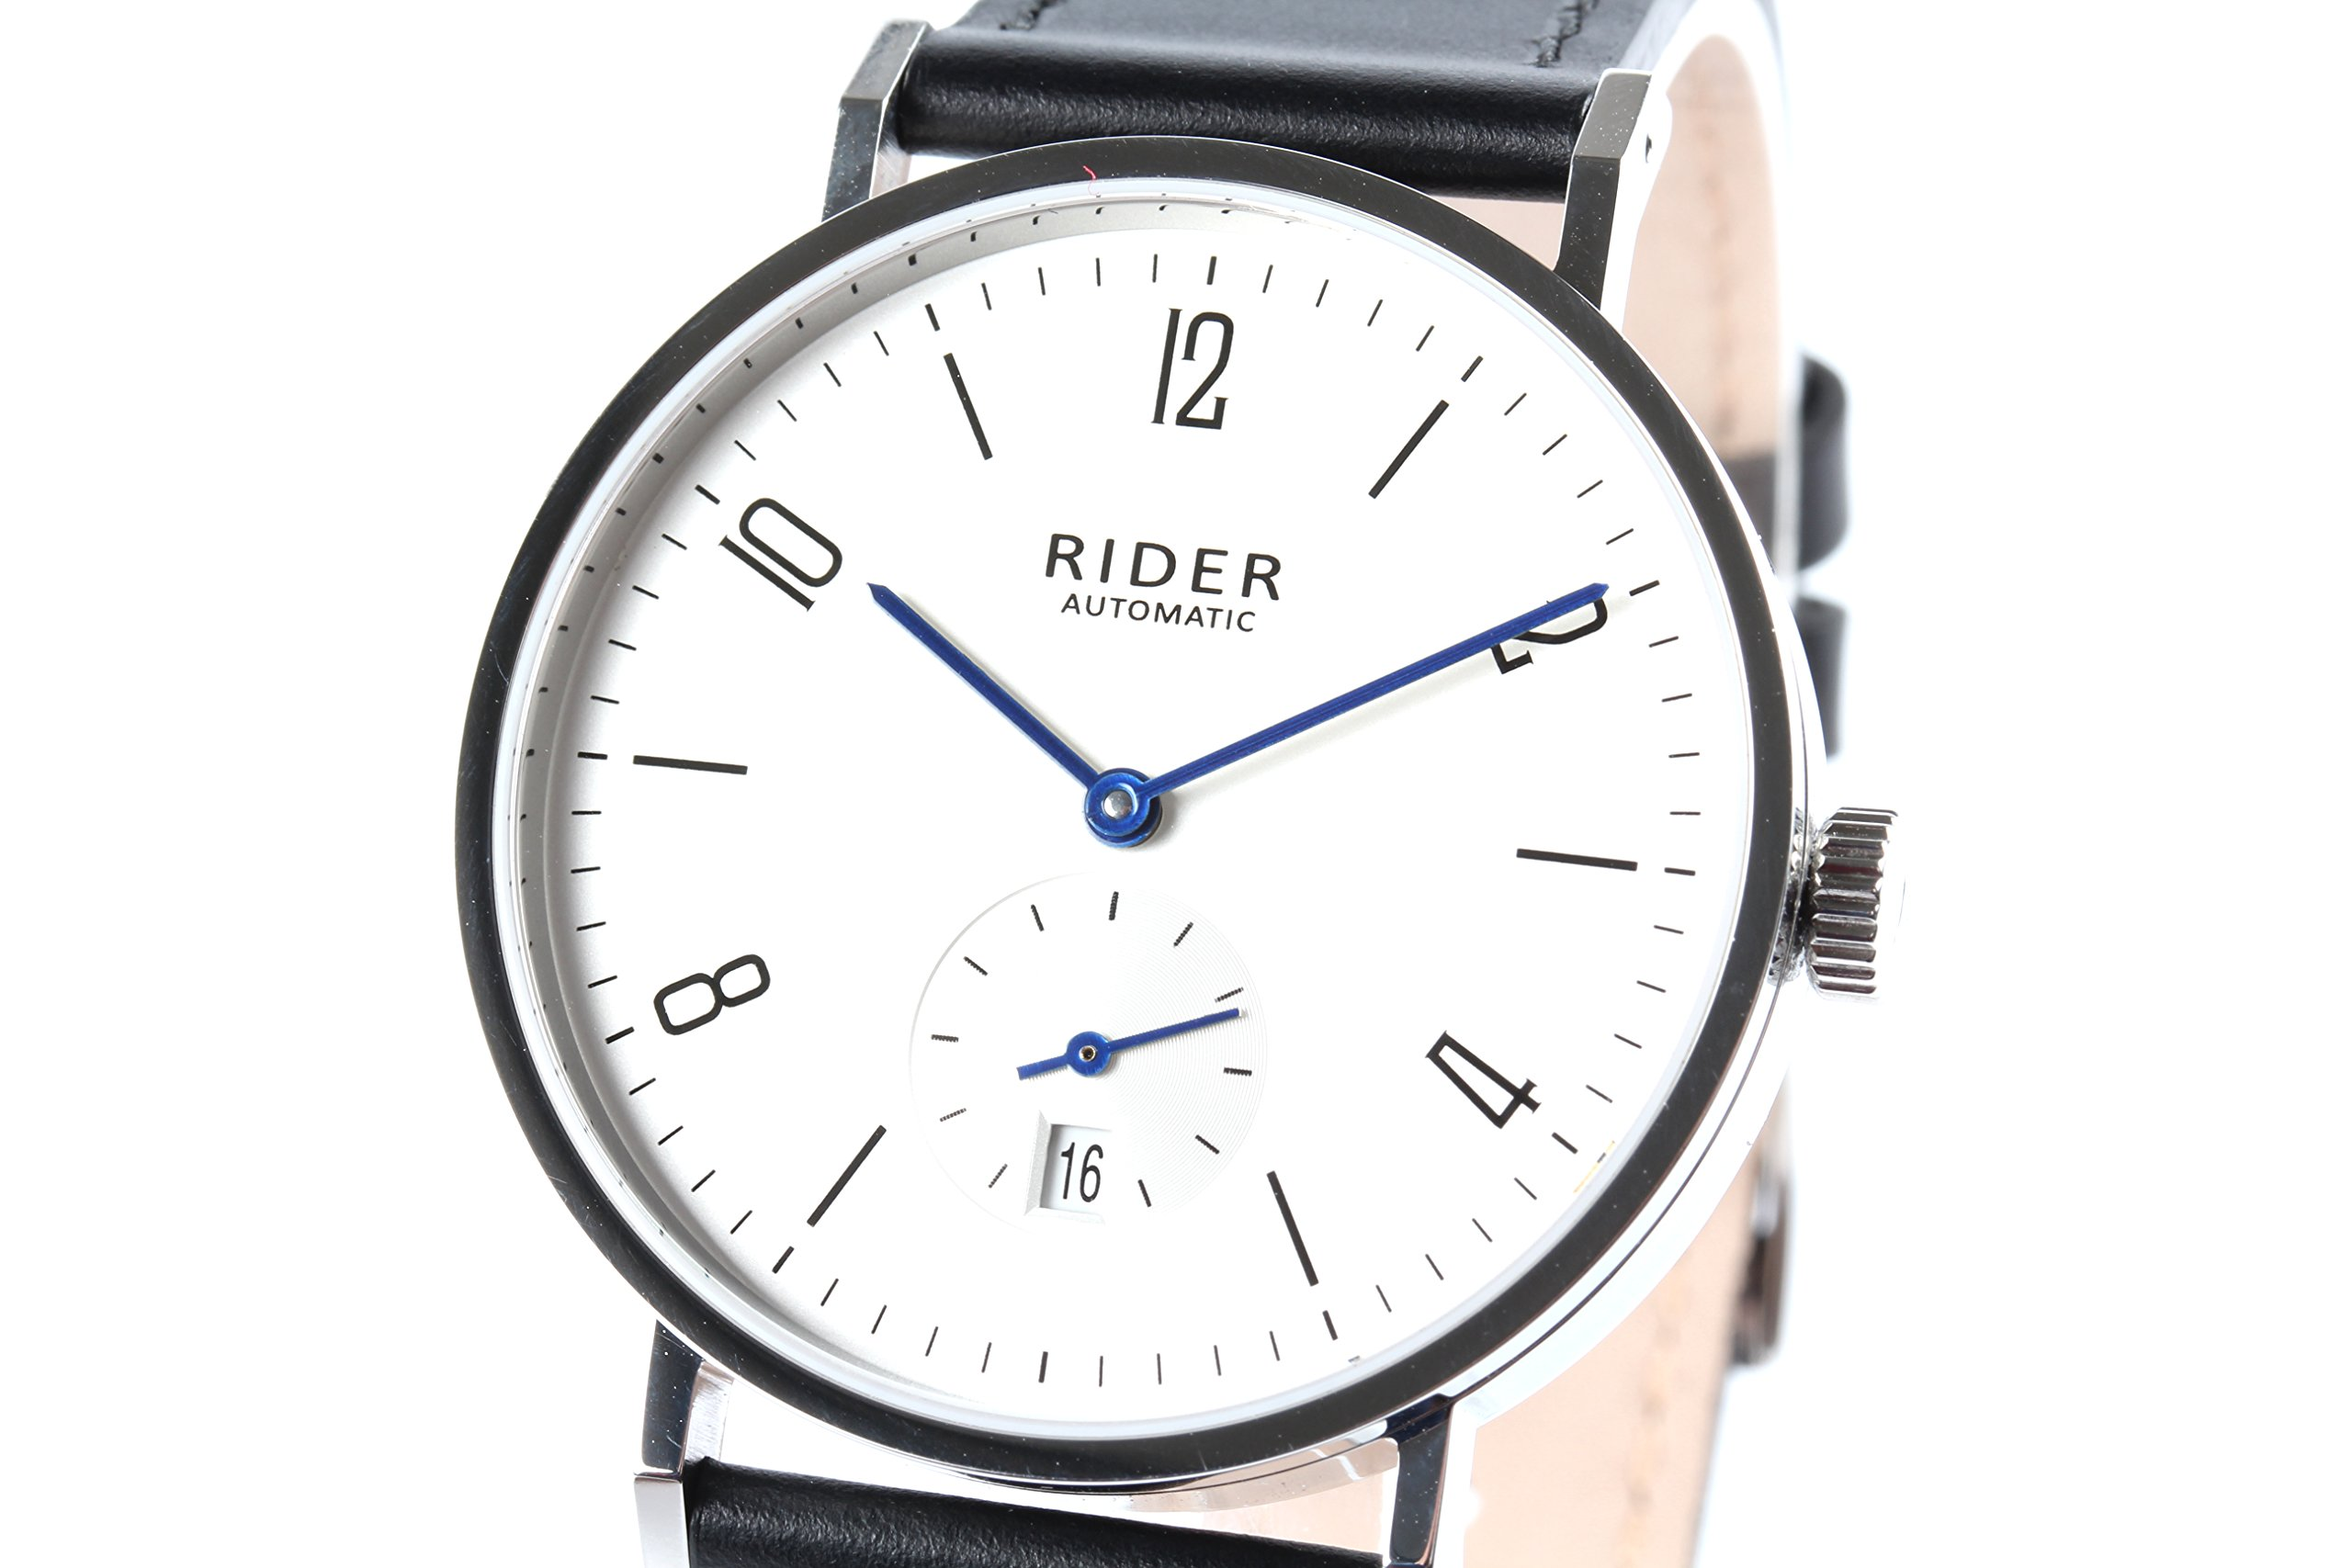 GT&FQ RIDER M003 Automatic Bauhaus Style Watch With 6H Date Function Arabic Sliver White Dial Black Strap Seagull ST1731 Movement